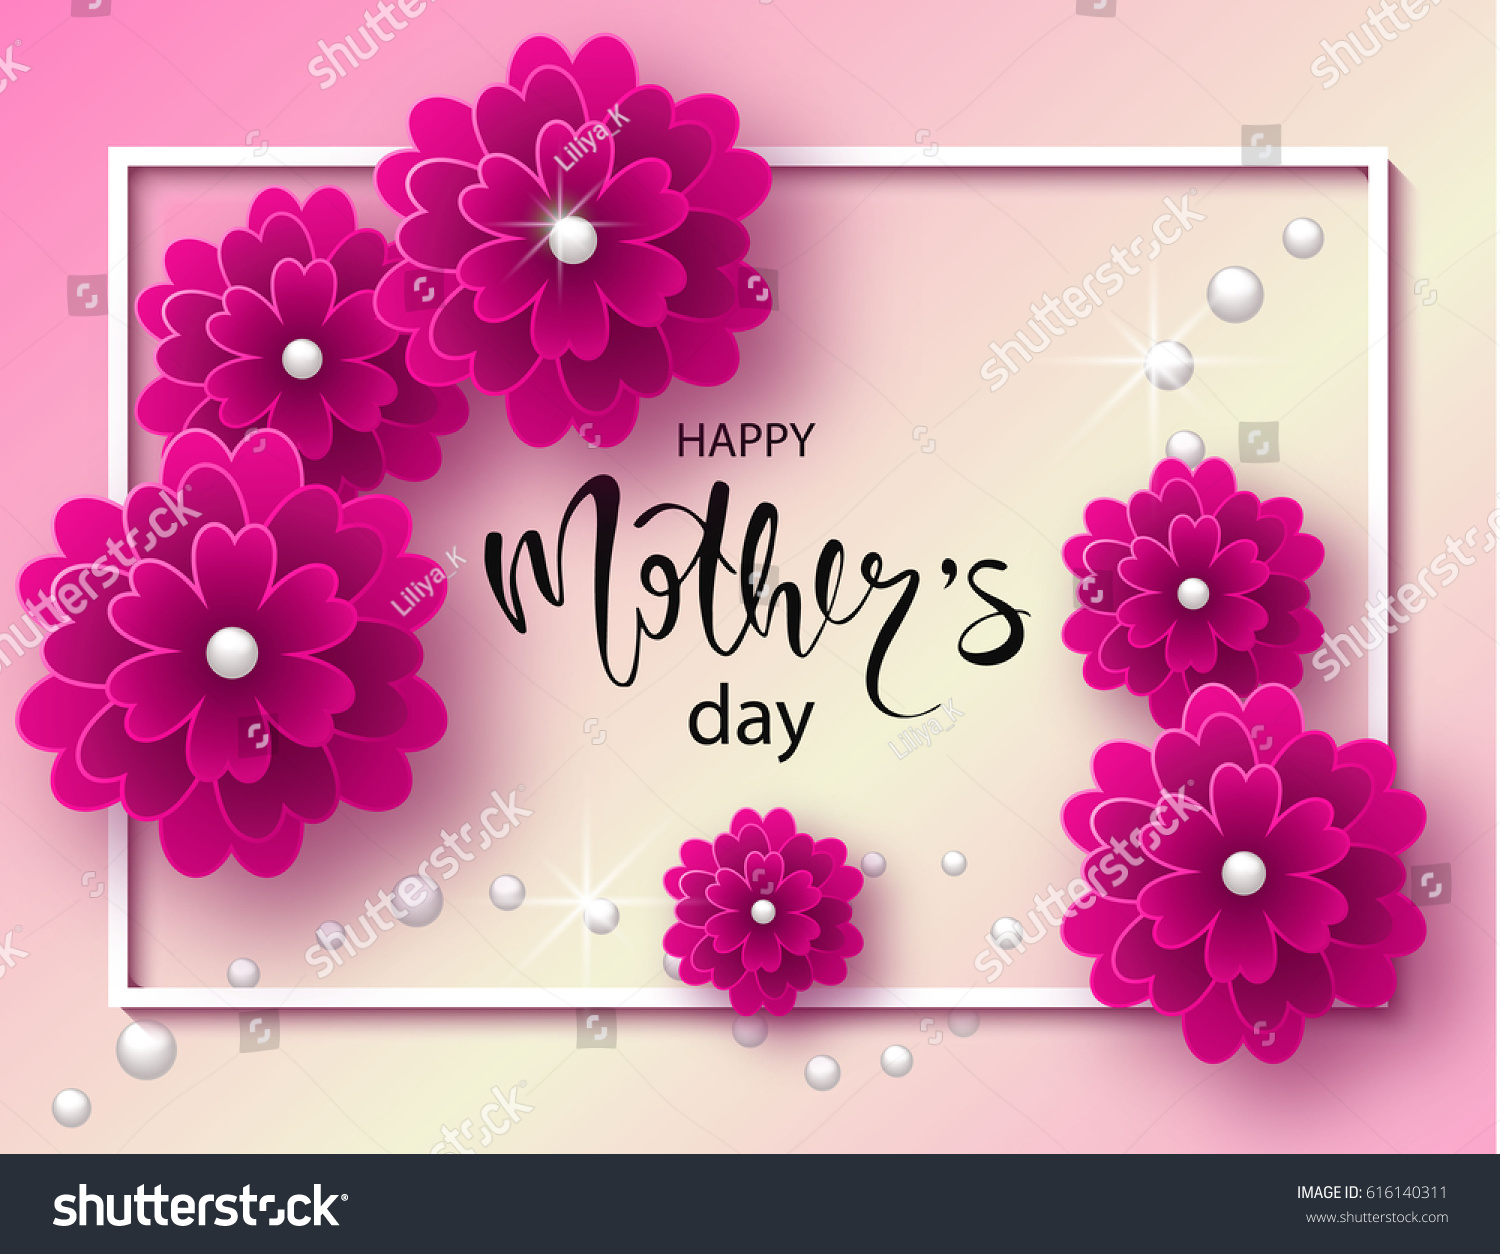 Creative Floral Flyer Of Happy Mothers Day Template For: Happy Mothers Day Background Beautiful Flowers Stock